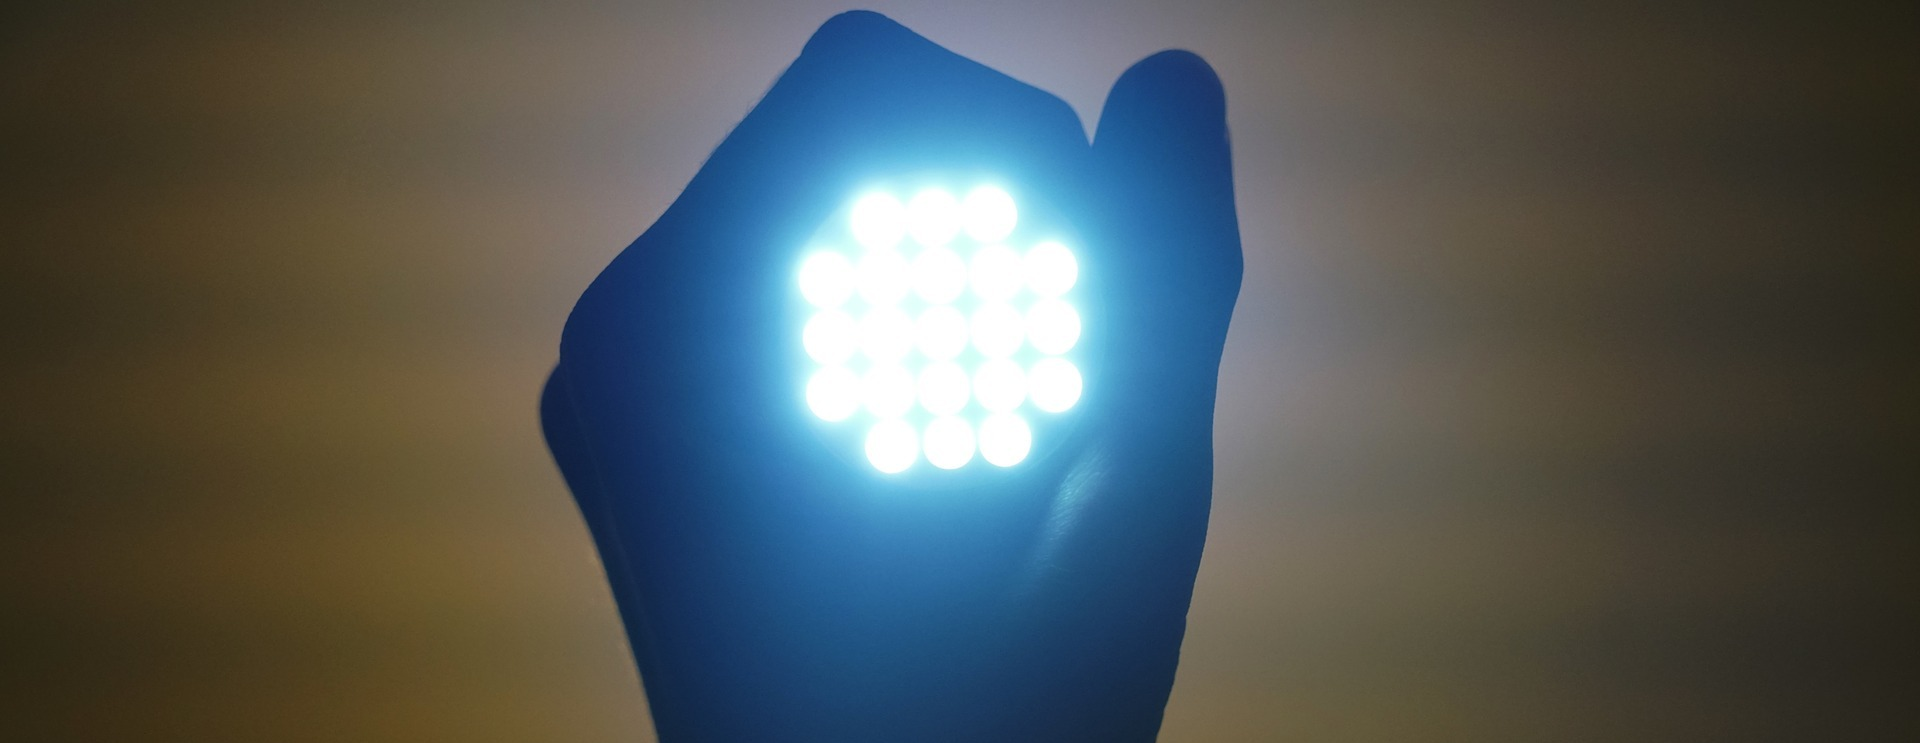 For the first time in Russia, LEDs of Russian origin are being produced